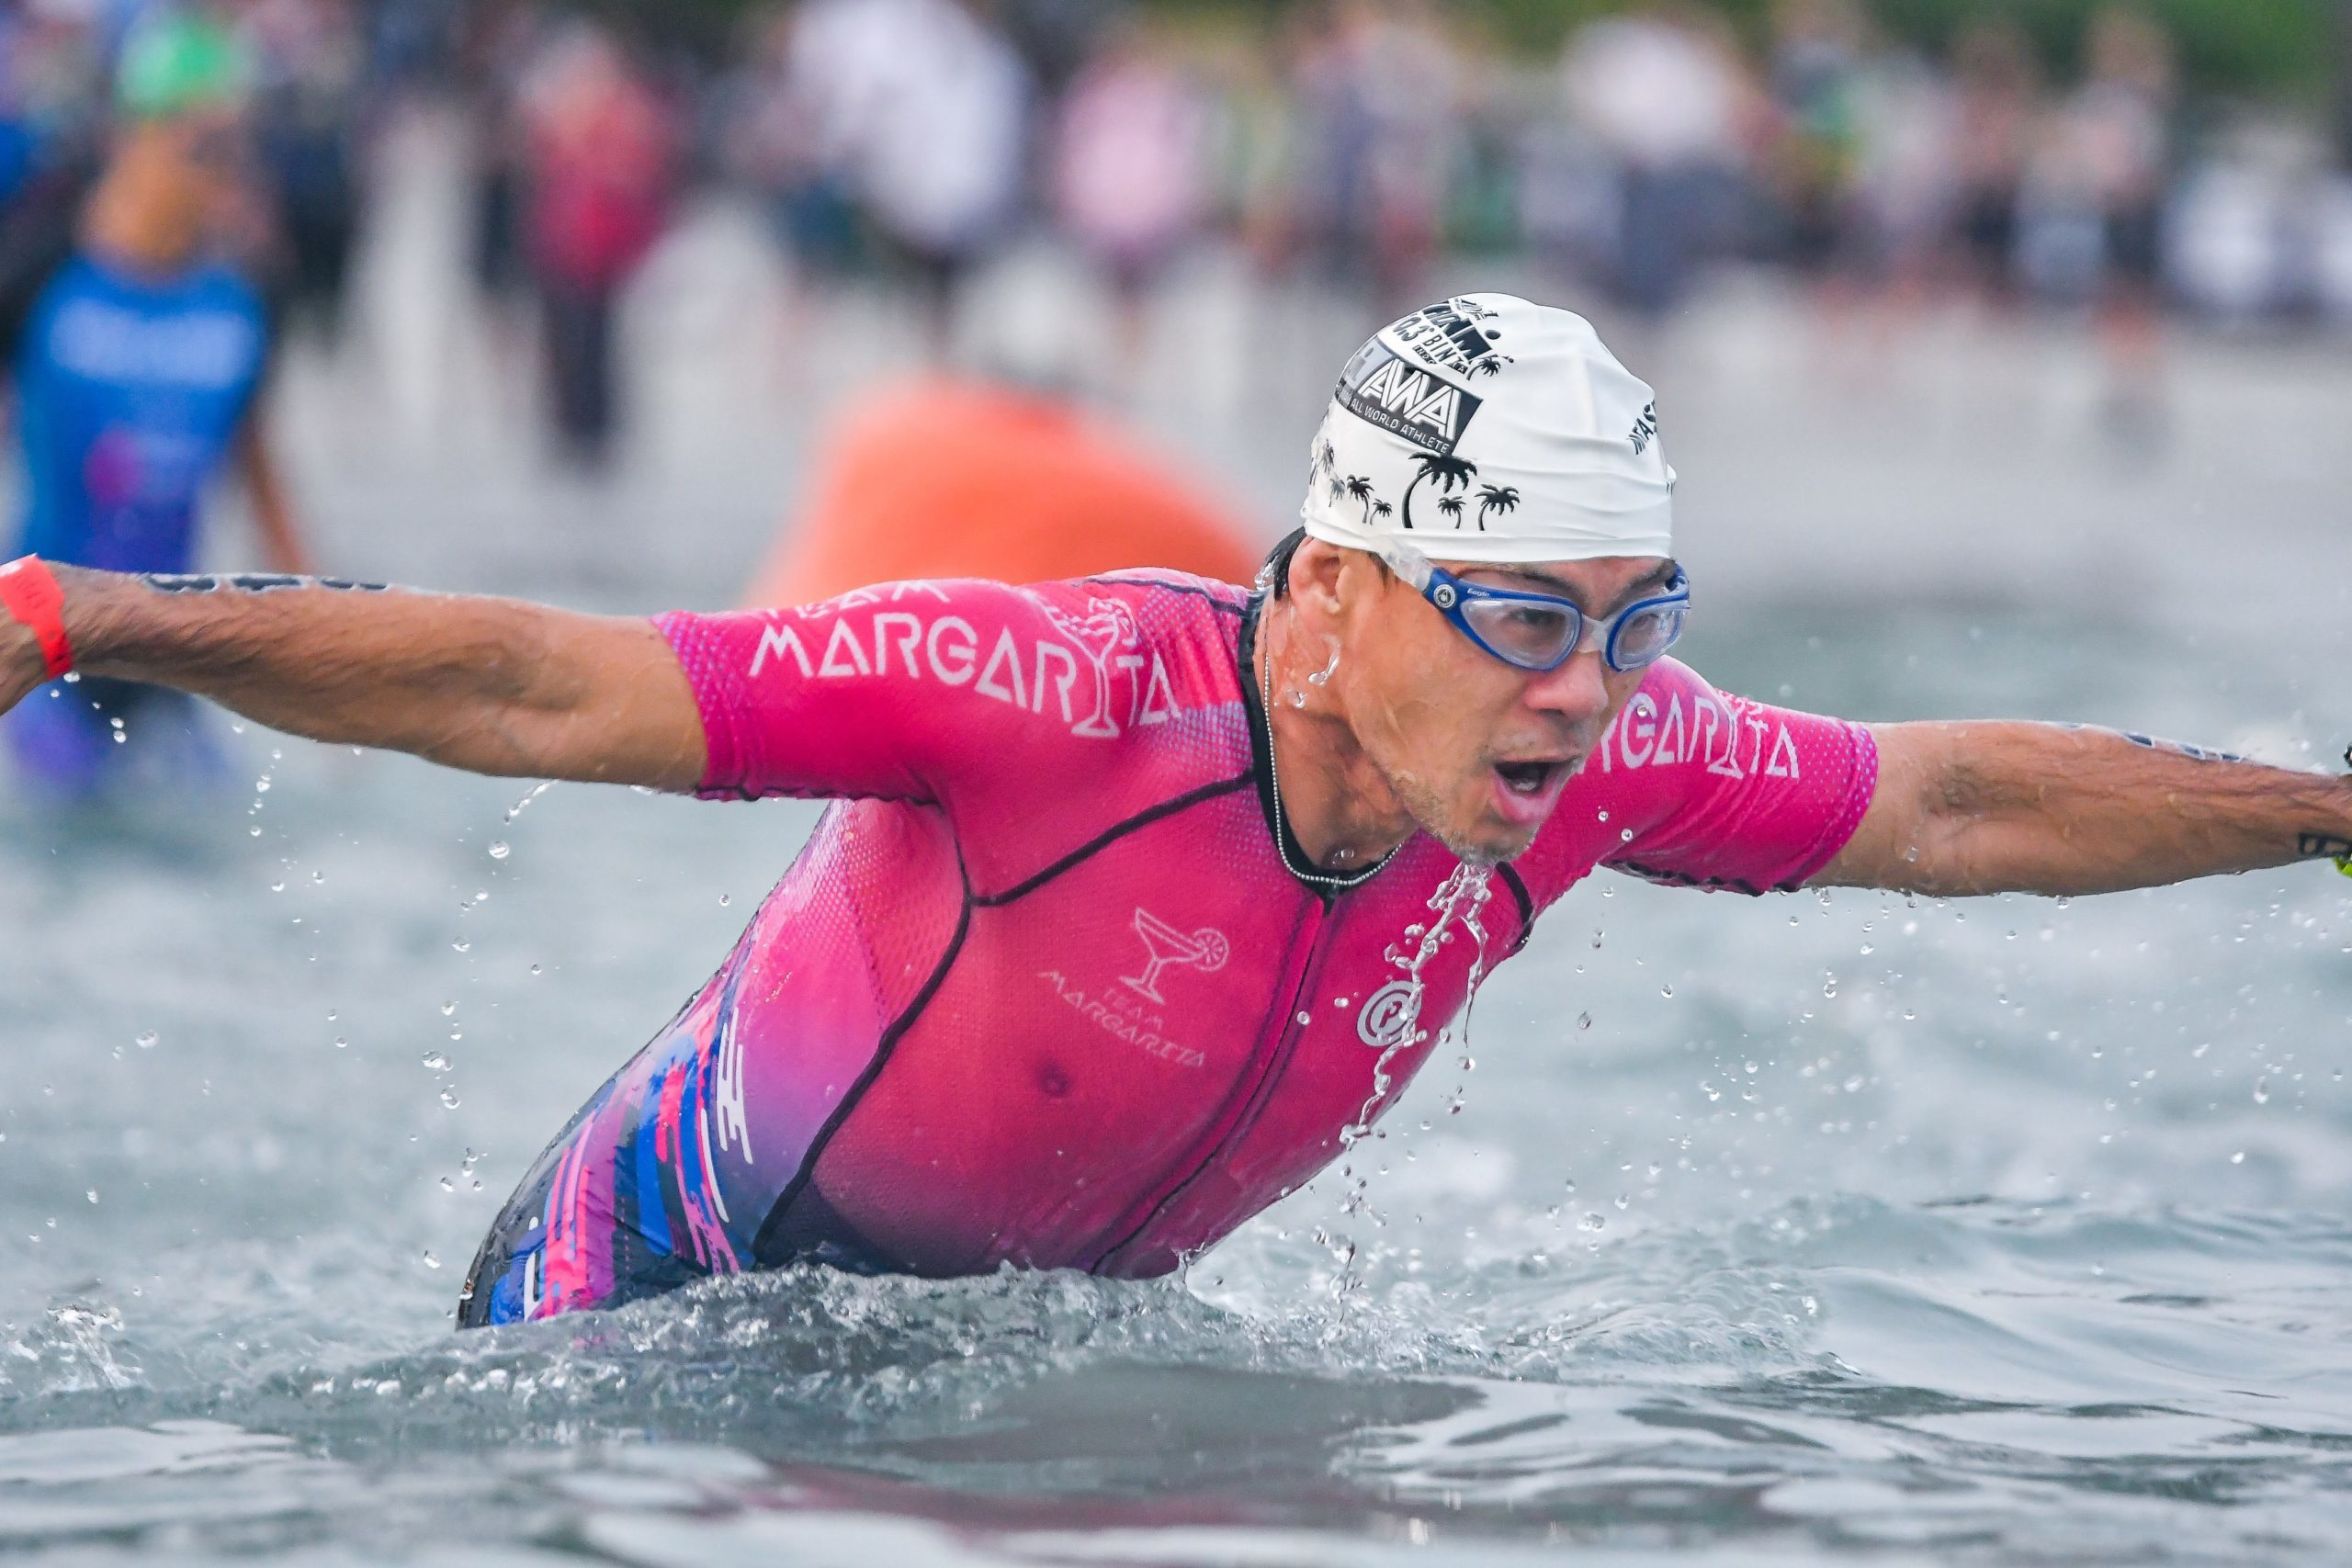 Swimmer wearing a Purpose tri suit